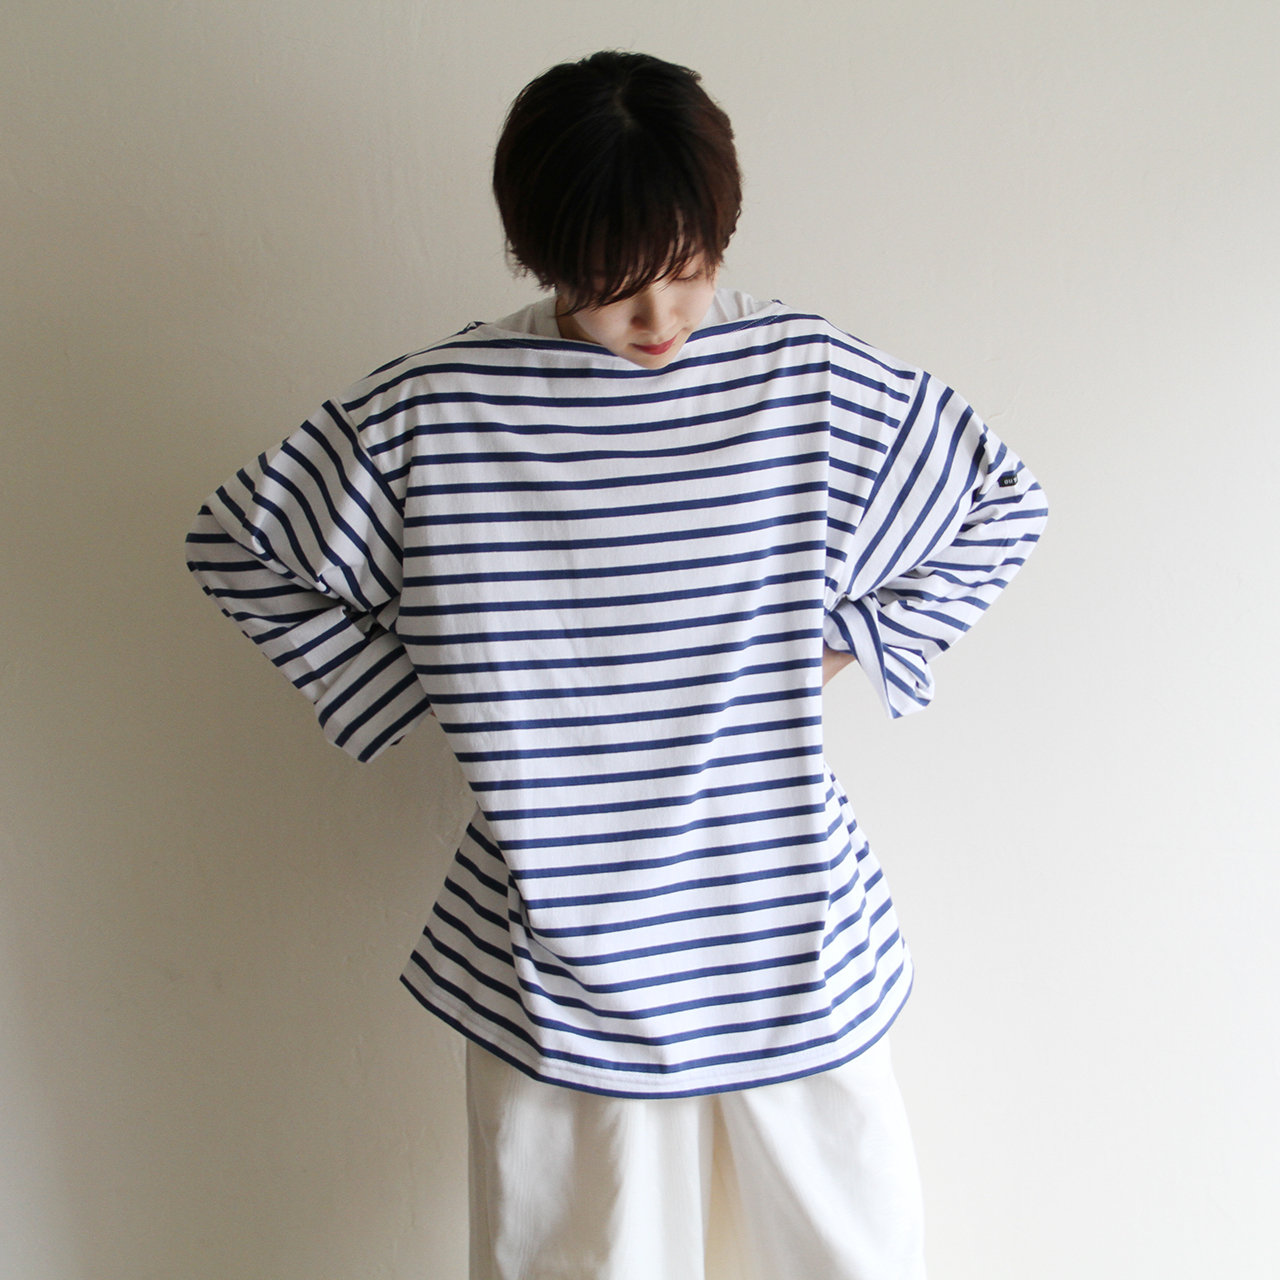 OUTIL【 unisex 】tricot aast  rayures